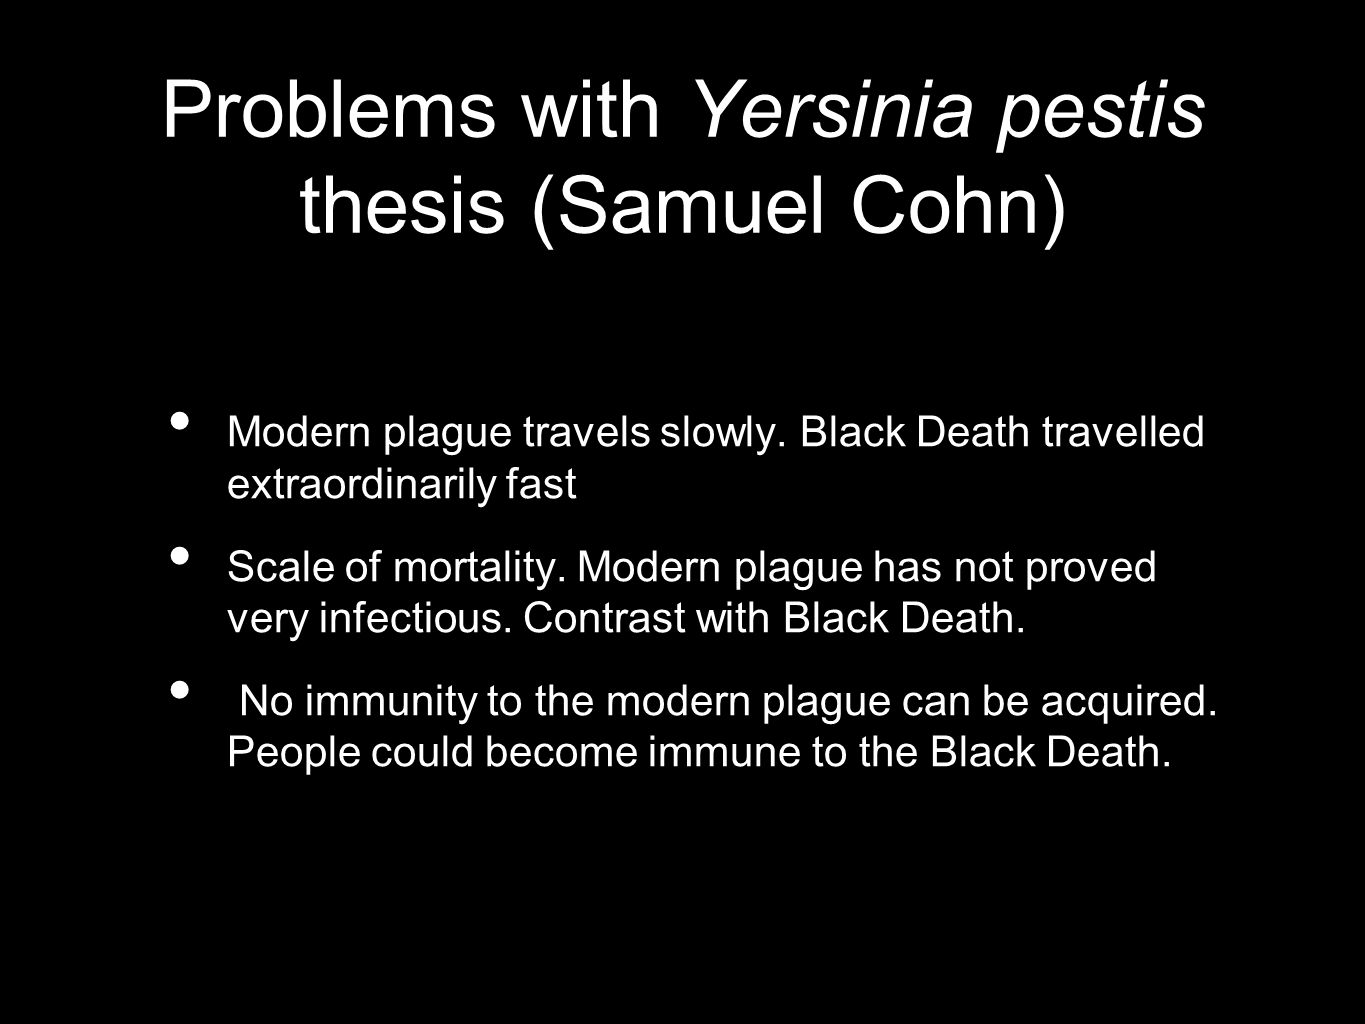 Problems with Yersinia pestis thesis (Samuel Cohn) Modern plague travels slowly.